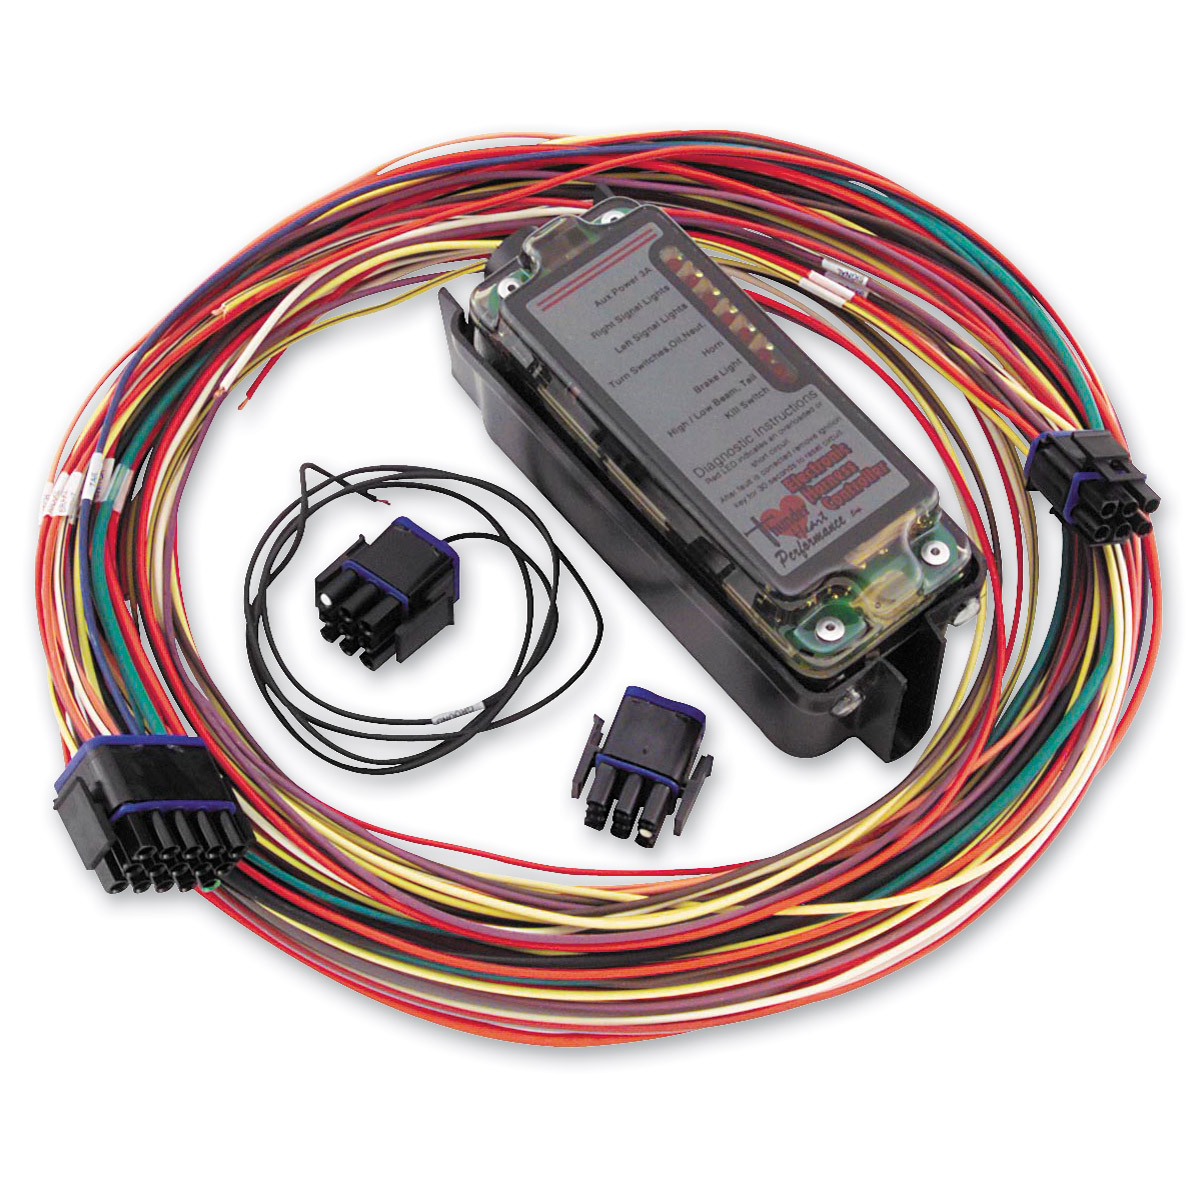 Motorcycle Driving Lights Wiring Diagram Harness Library Thunder Heart Performance Complete Electronic Controller